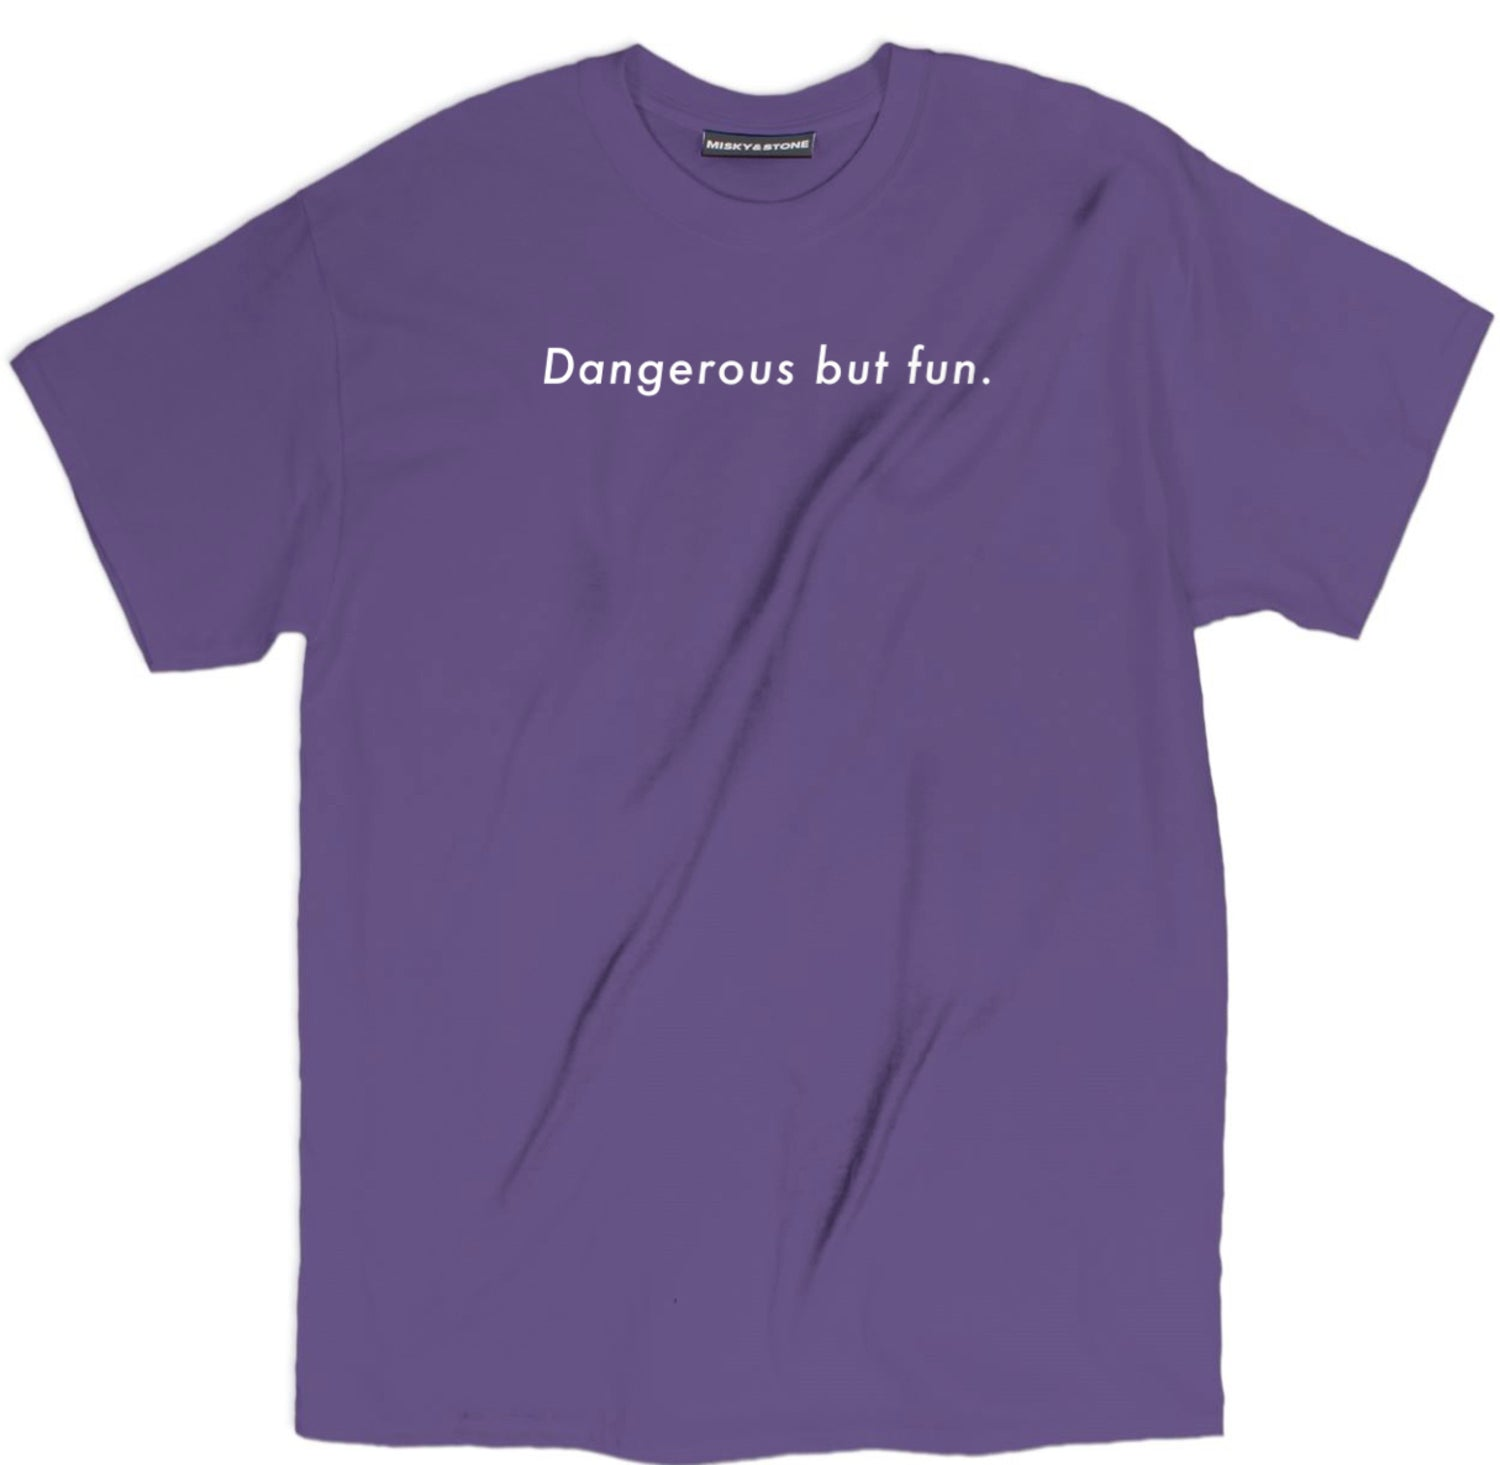 Danger Tee, Adventure Tee